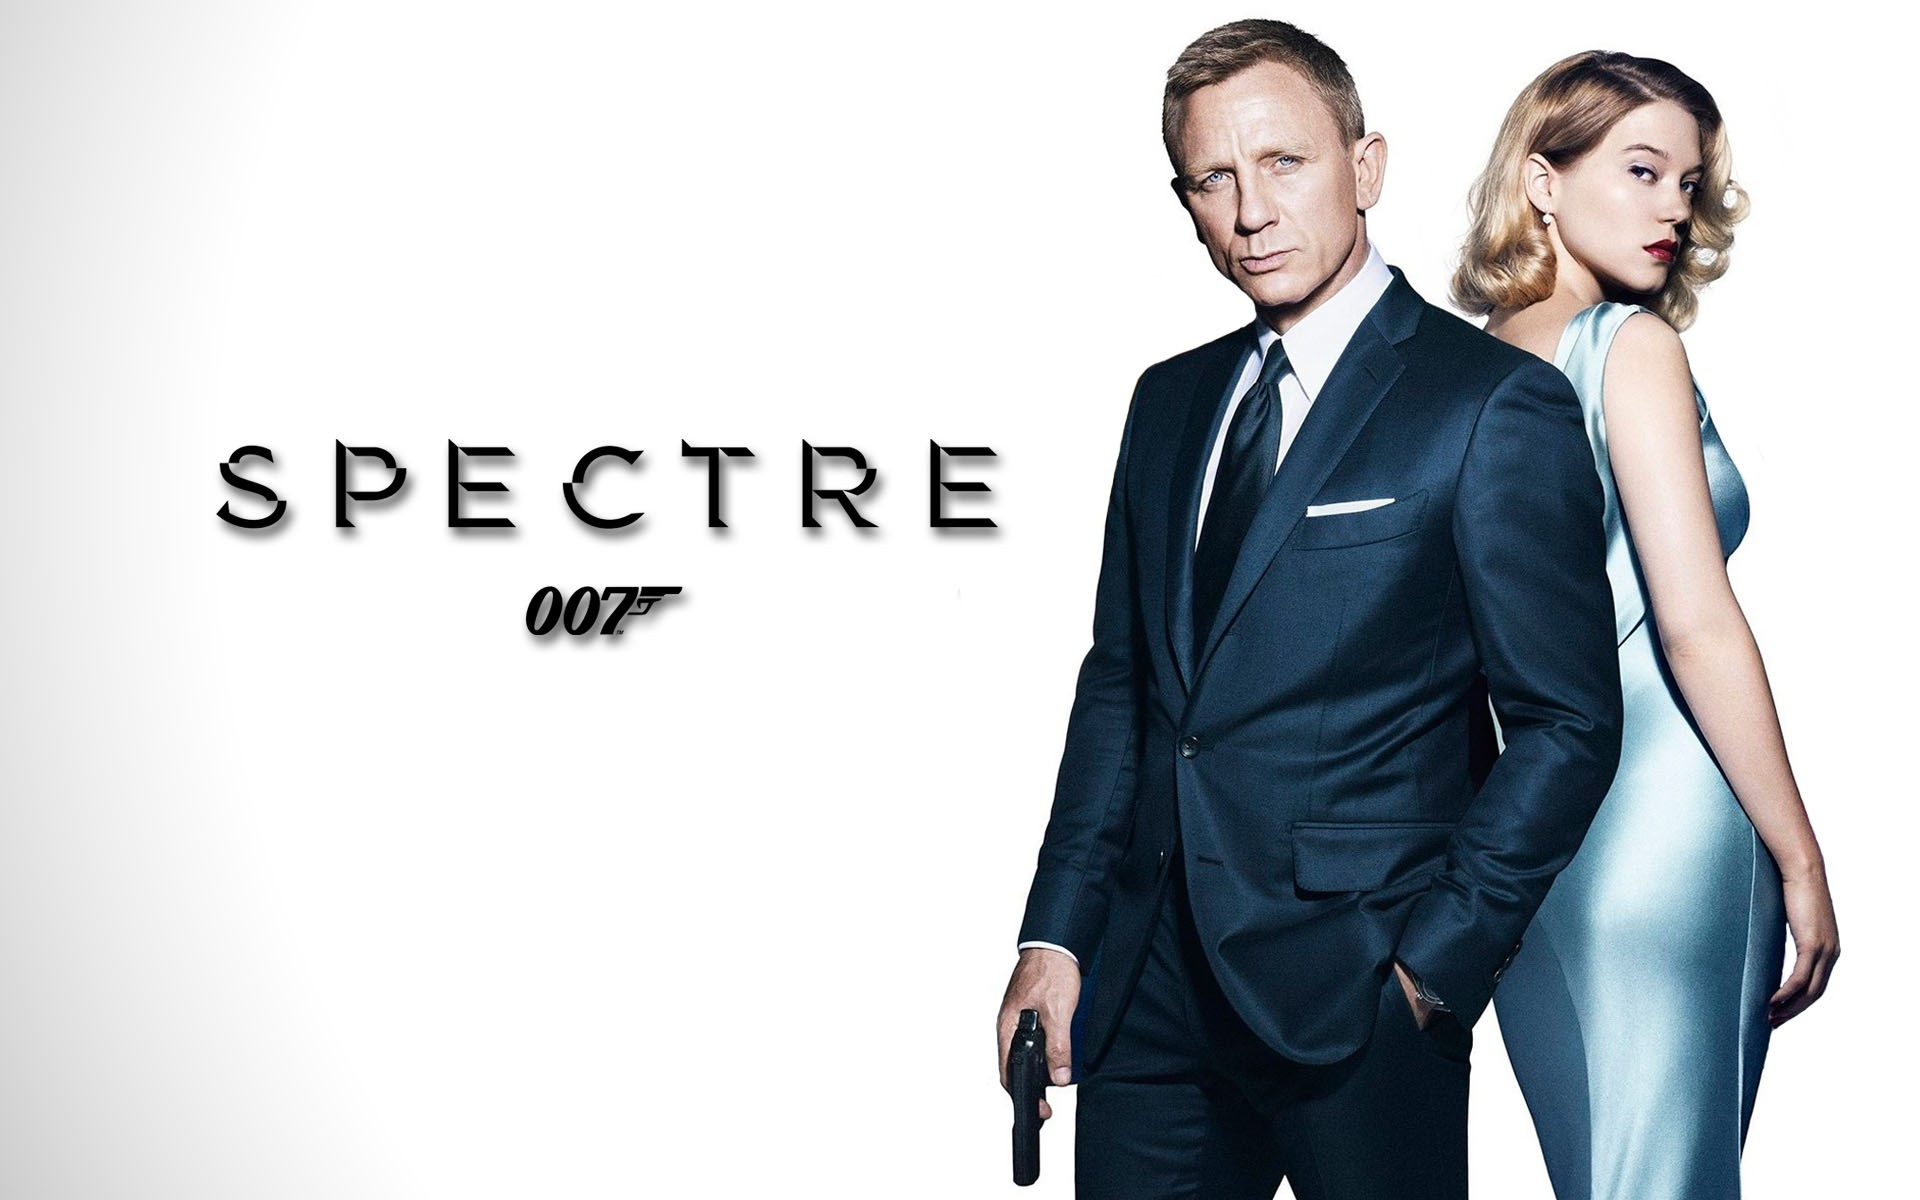 Daniel Craig James Bond Spectre Movie Wide HD Wallpaper 1920x1200